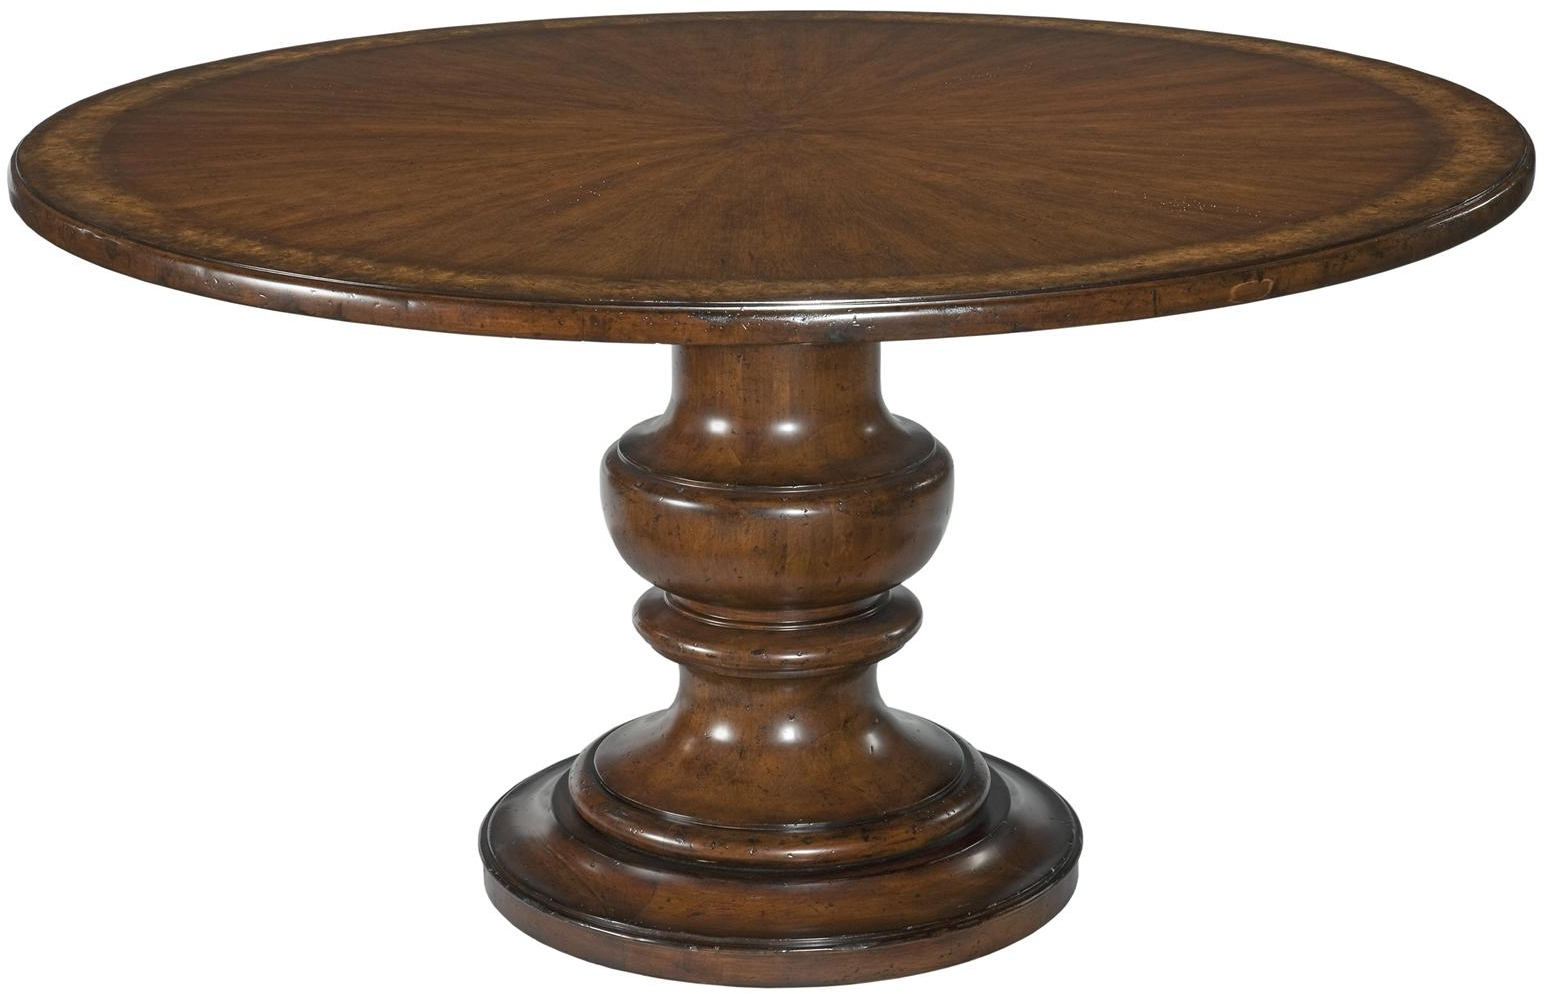 Details About New Dining Table 58 Round Tuscan Style Ringed Pedestal Cherry Veneer